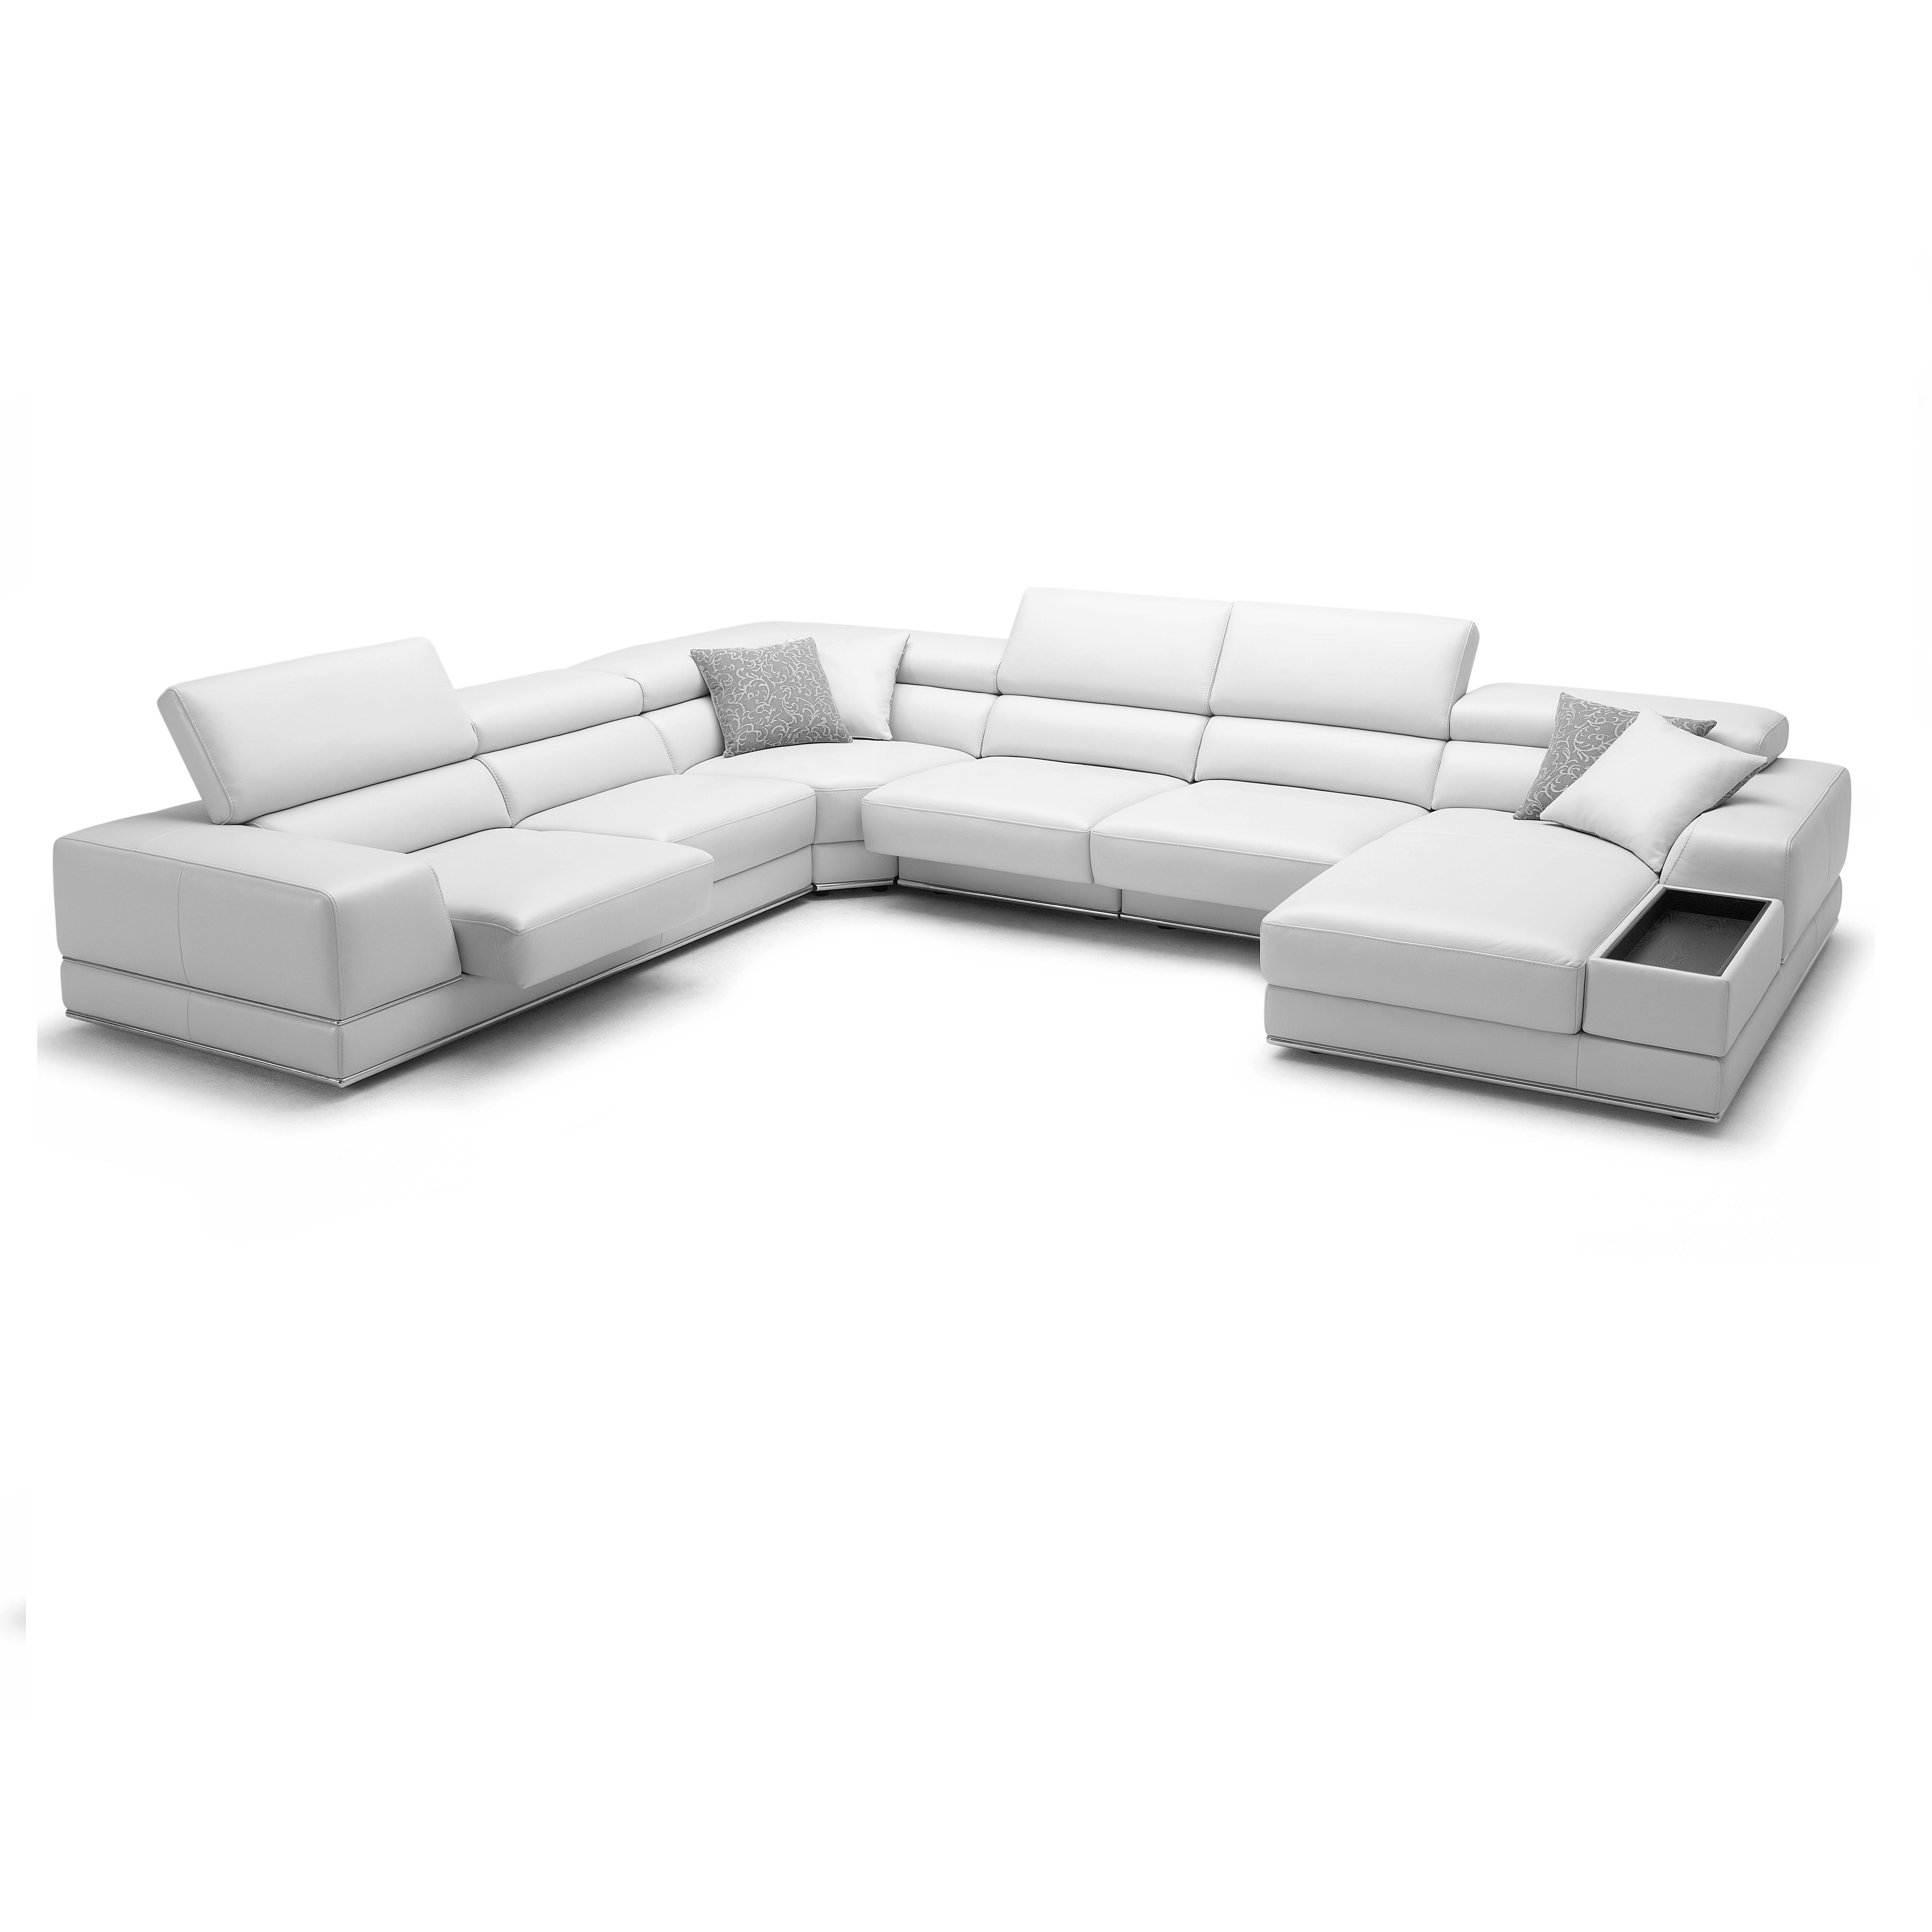 bergamo sectional leather modern sofa gray pet bed extended white